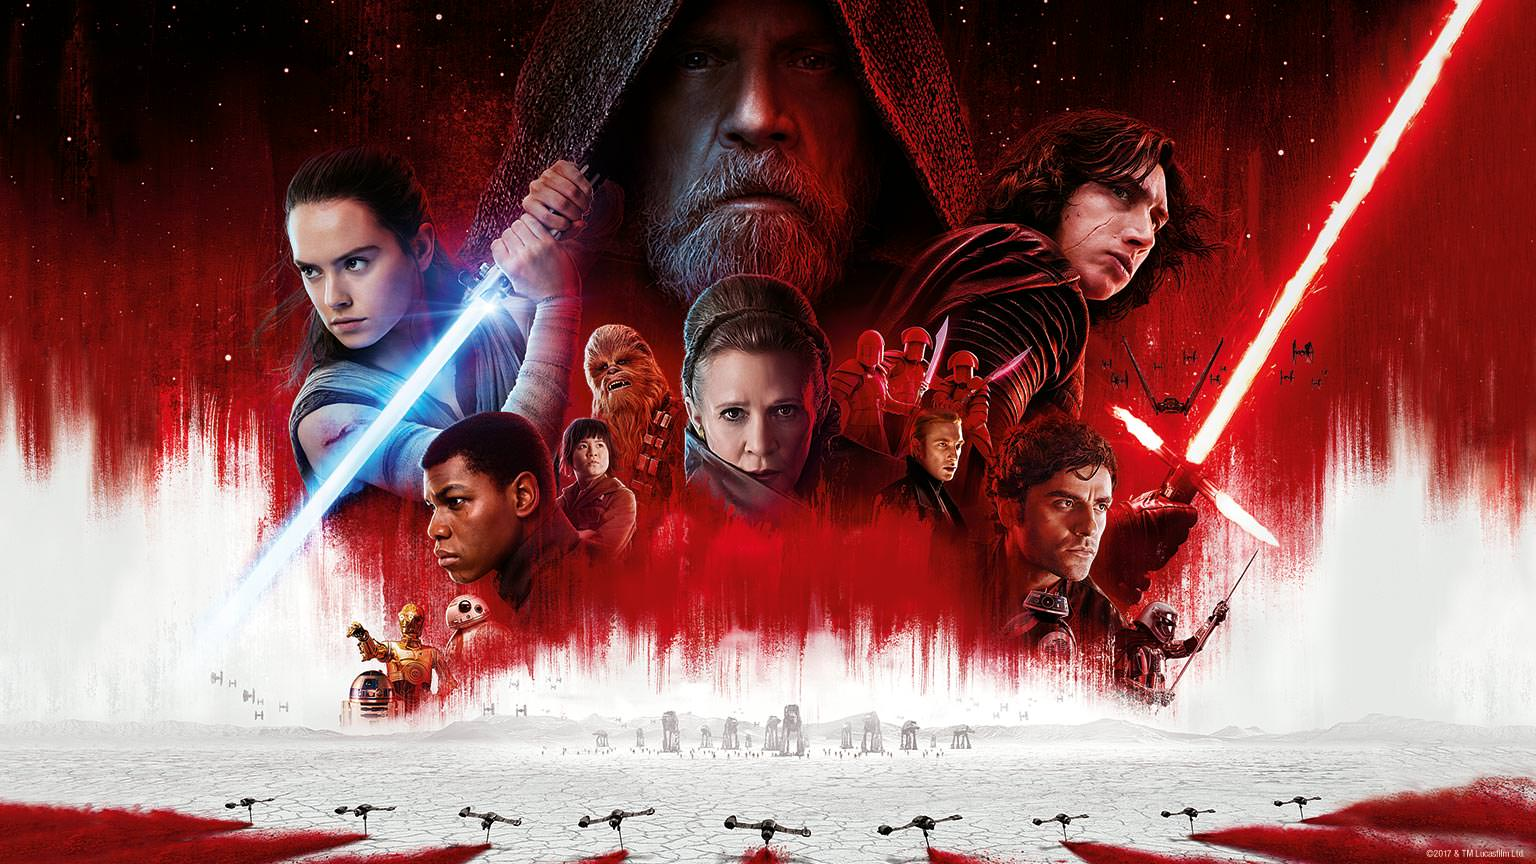 Star Wars: The Last Jedi crosses $800 million at the worldwide box office